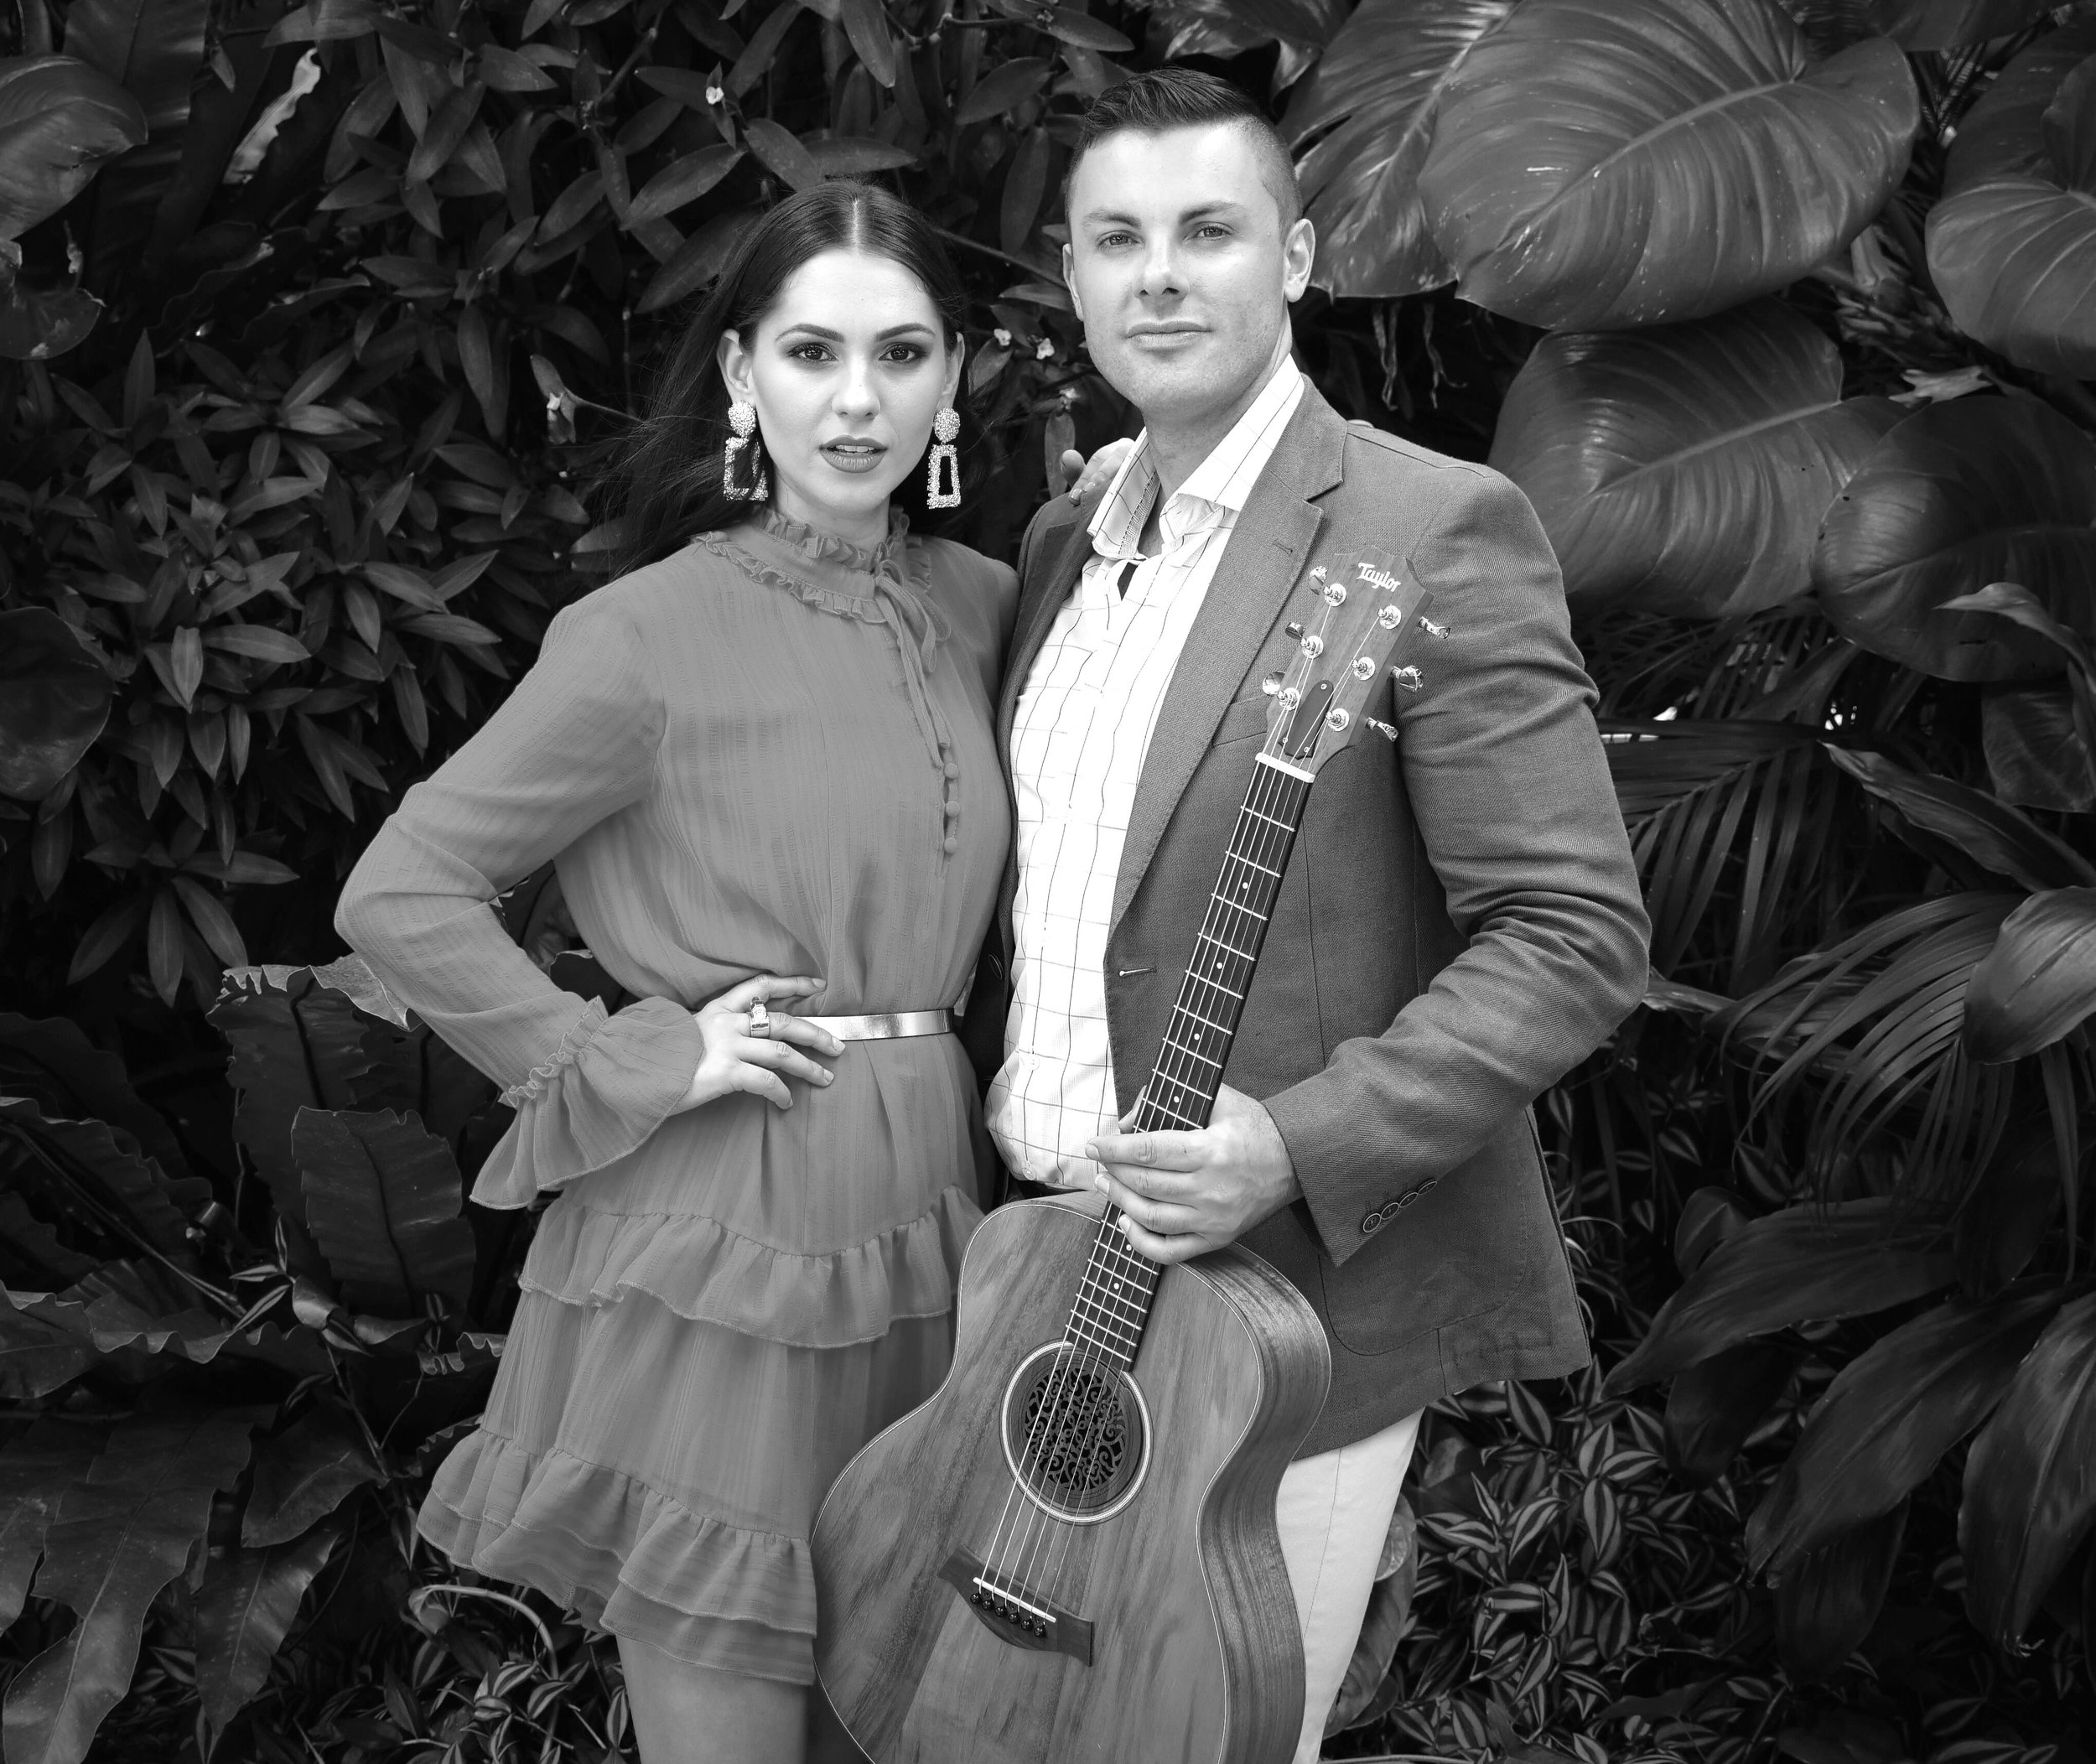 Nicole + Rob - Singer + Guitarist DuoFancy, fun and fabulous. Nicole and Rob are a match made in music heaven. Serious guitar skills, paired with dreamy vocals to create the perfect party vibe.An impressive duo that will cater to you and your event atmosphere.